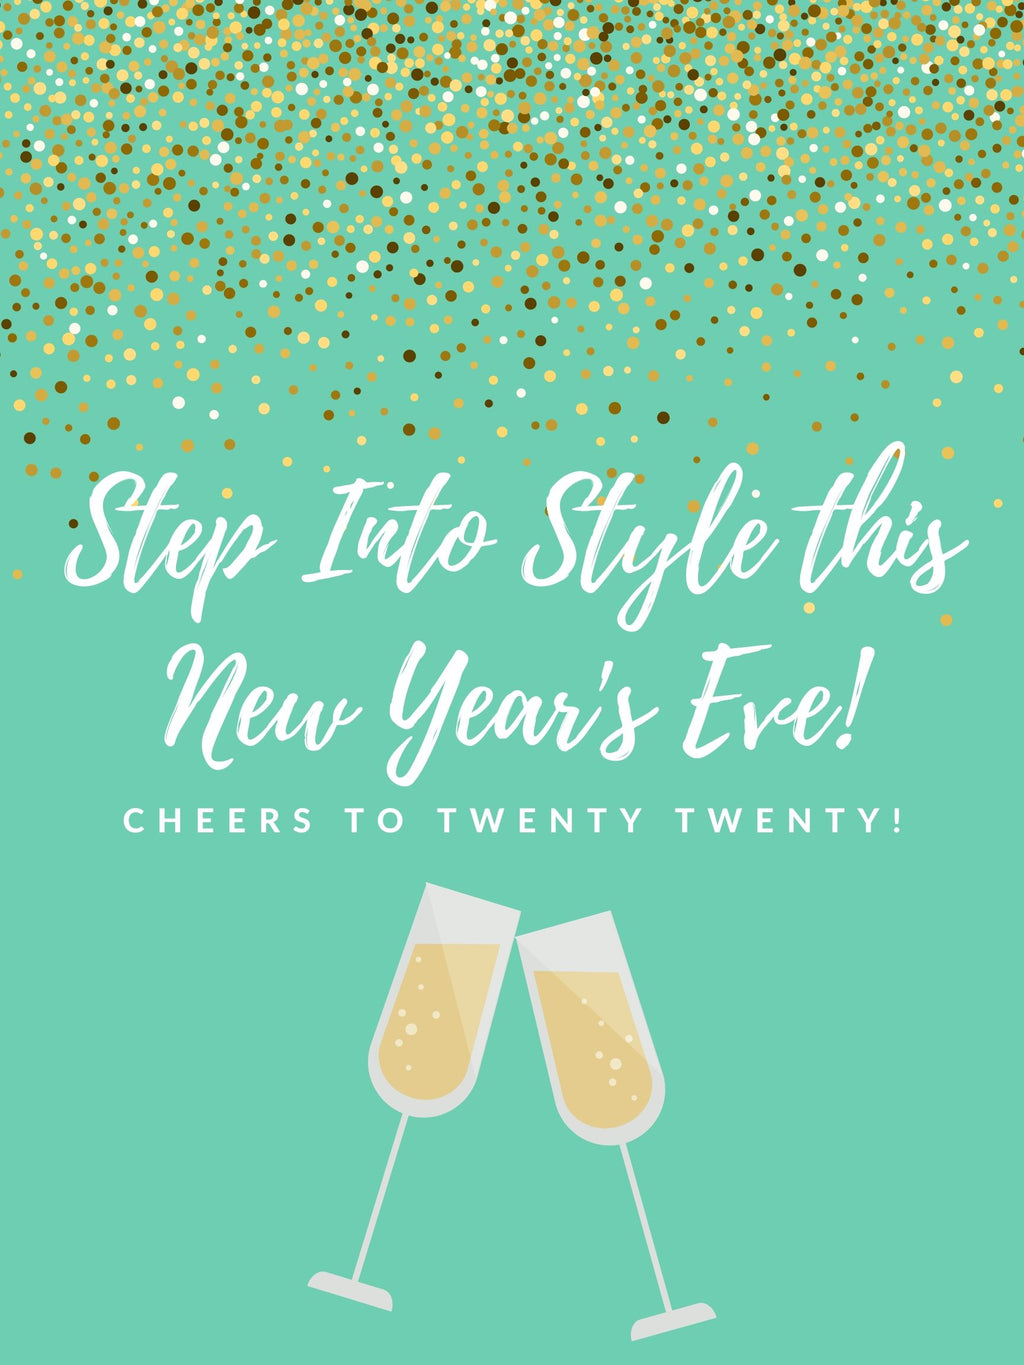 Step Into Style This NYE! 🥂